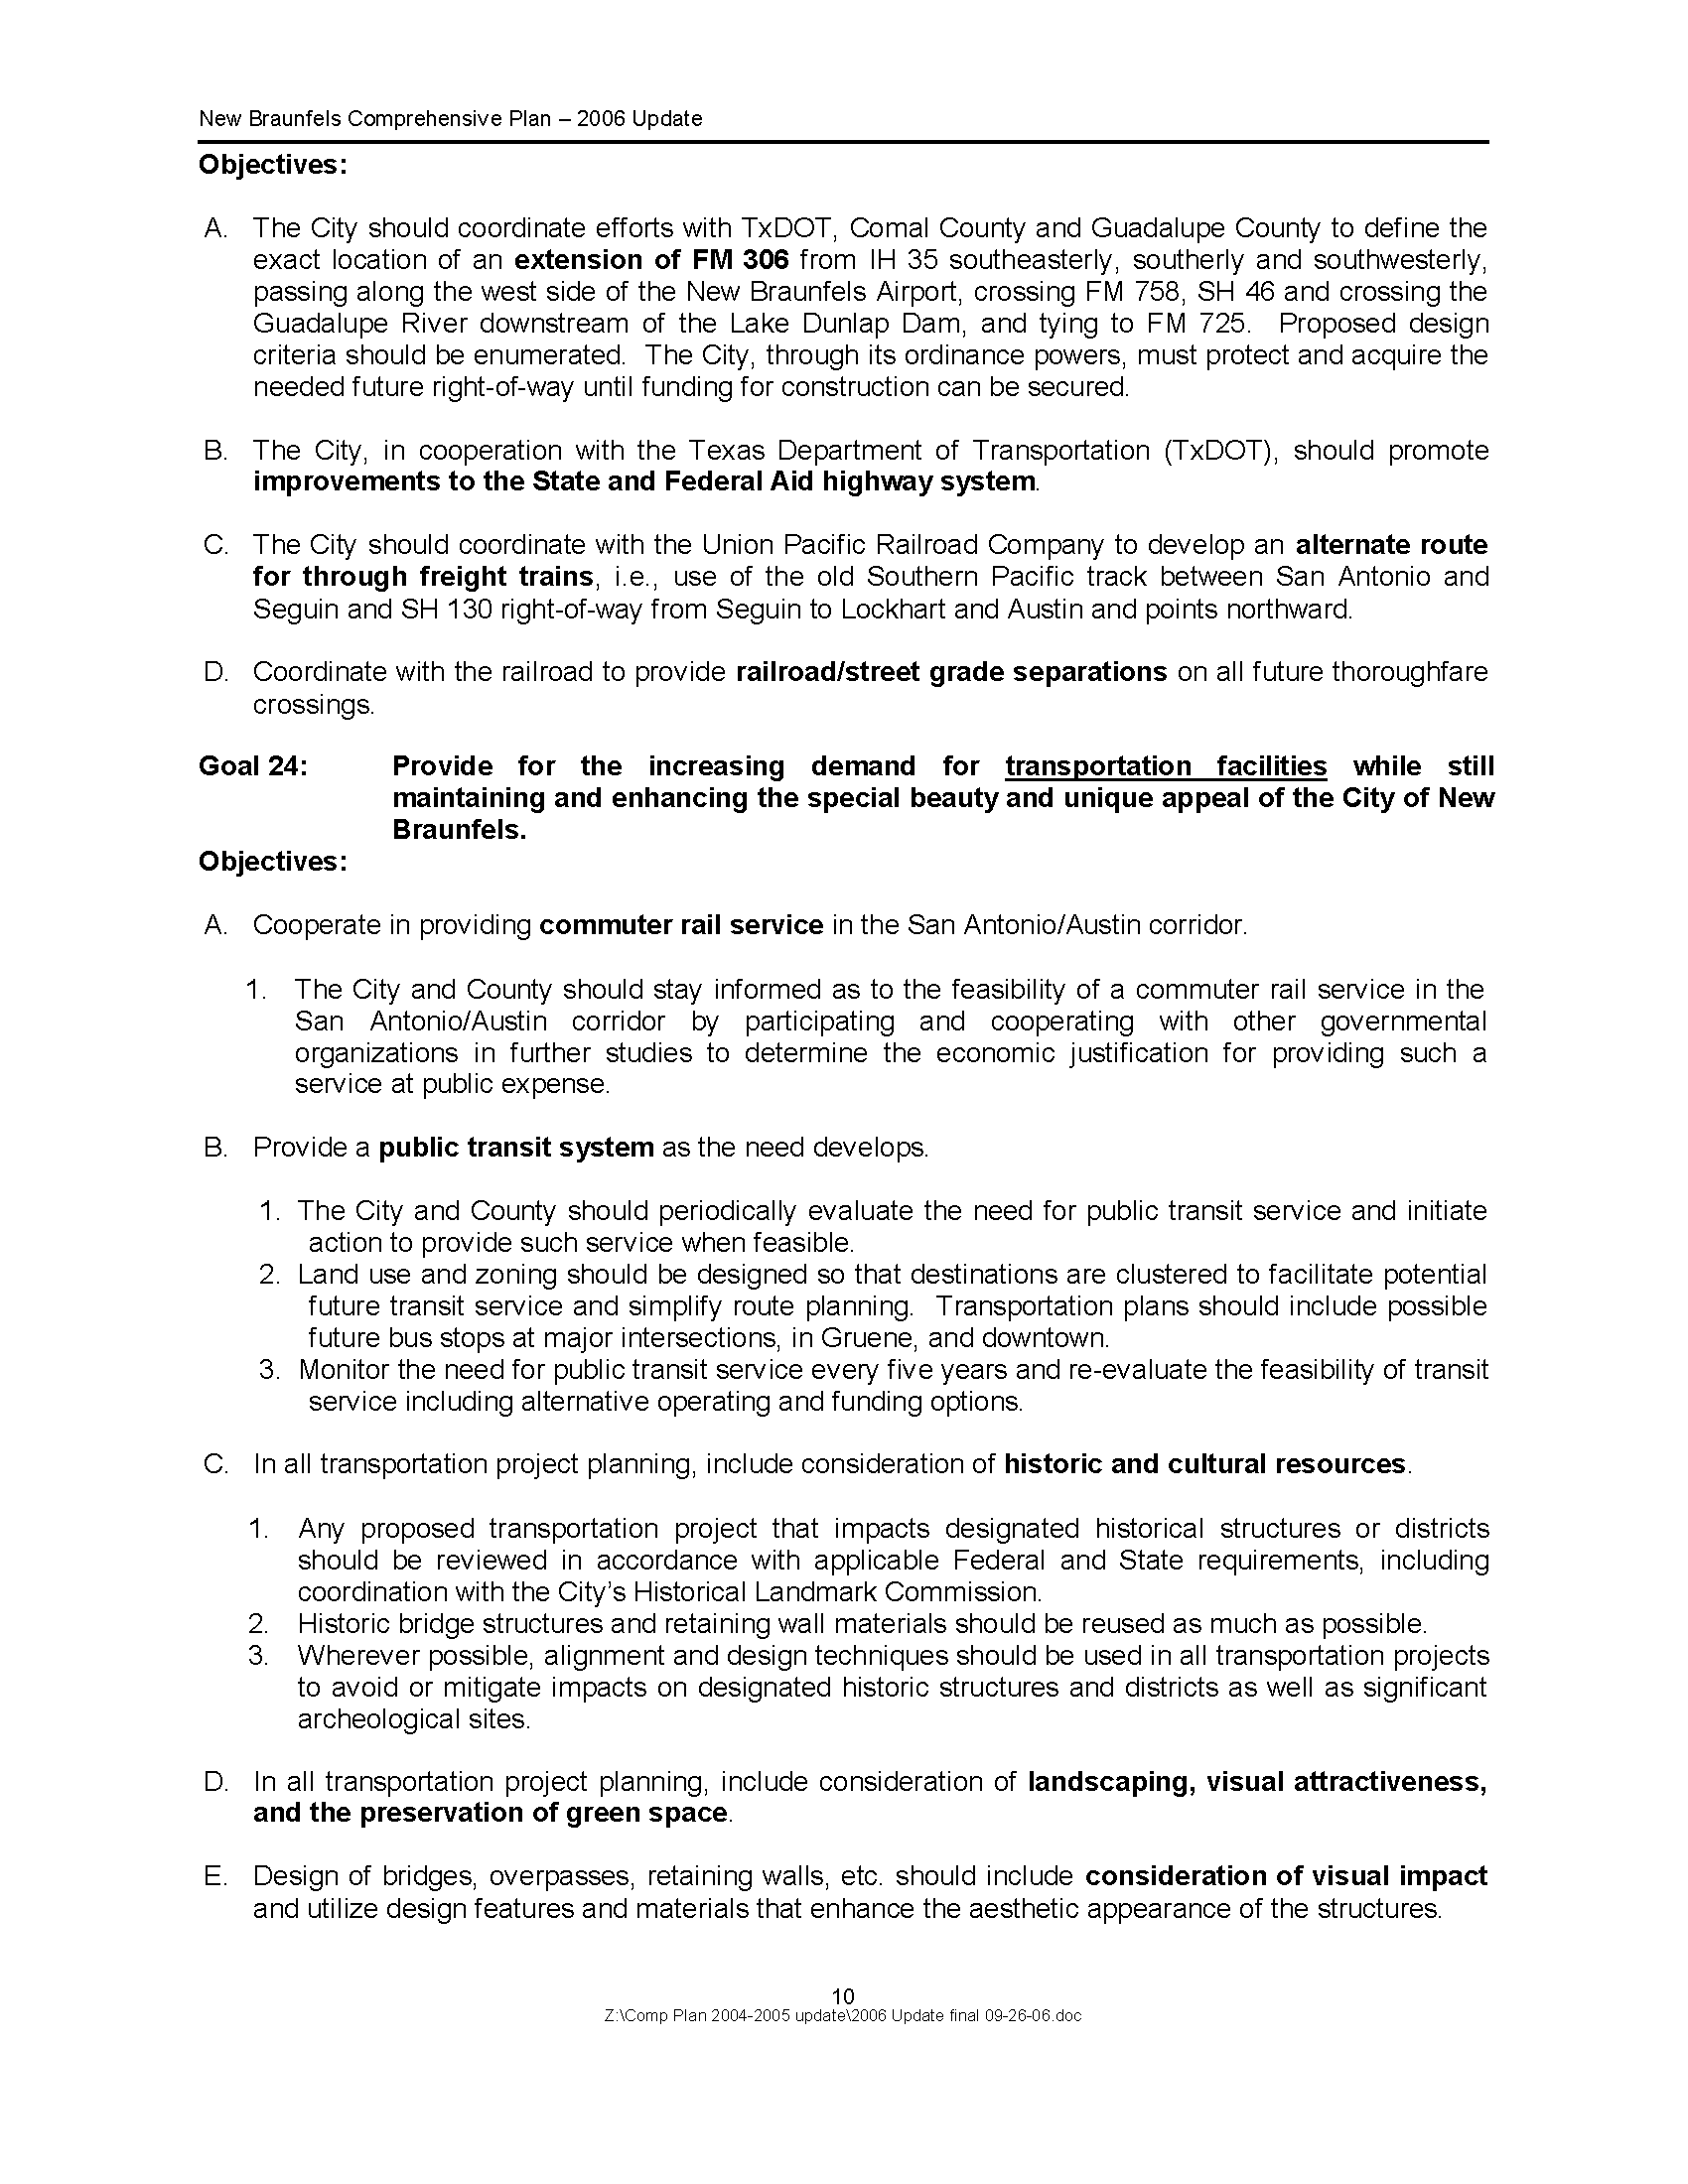 Goals + Objectives_Page_10.png